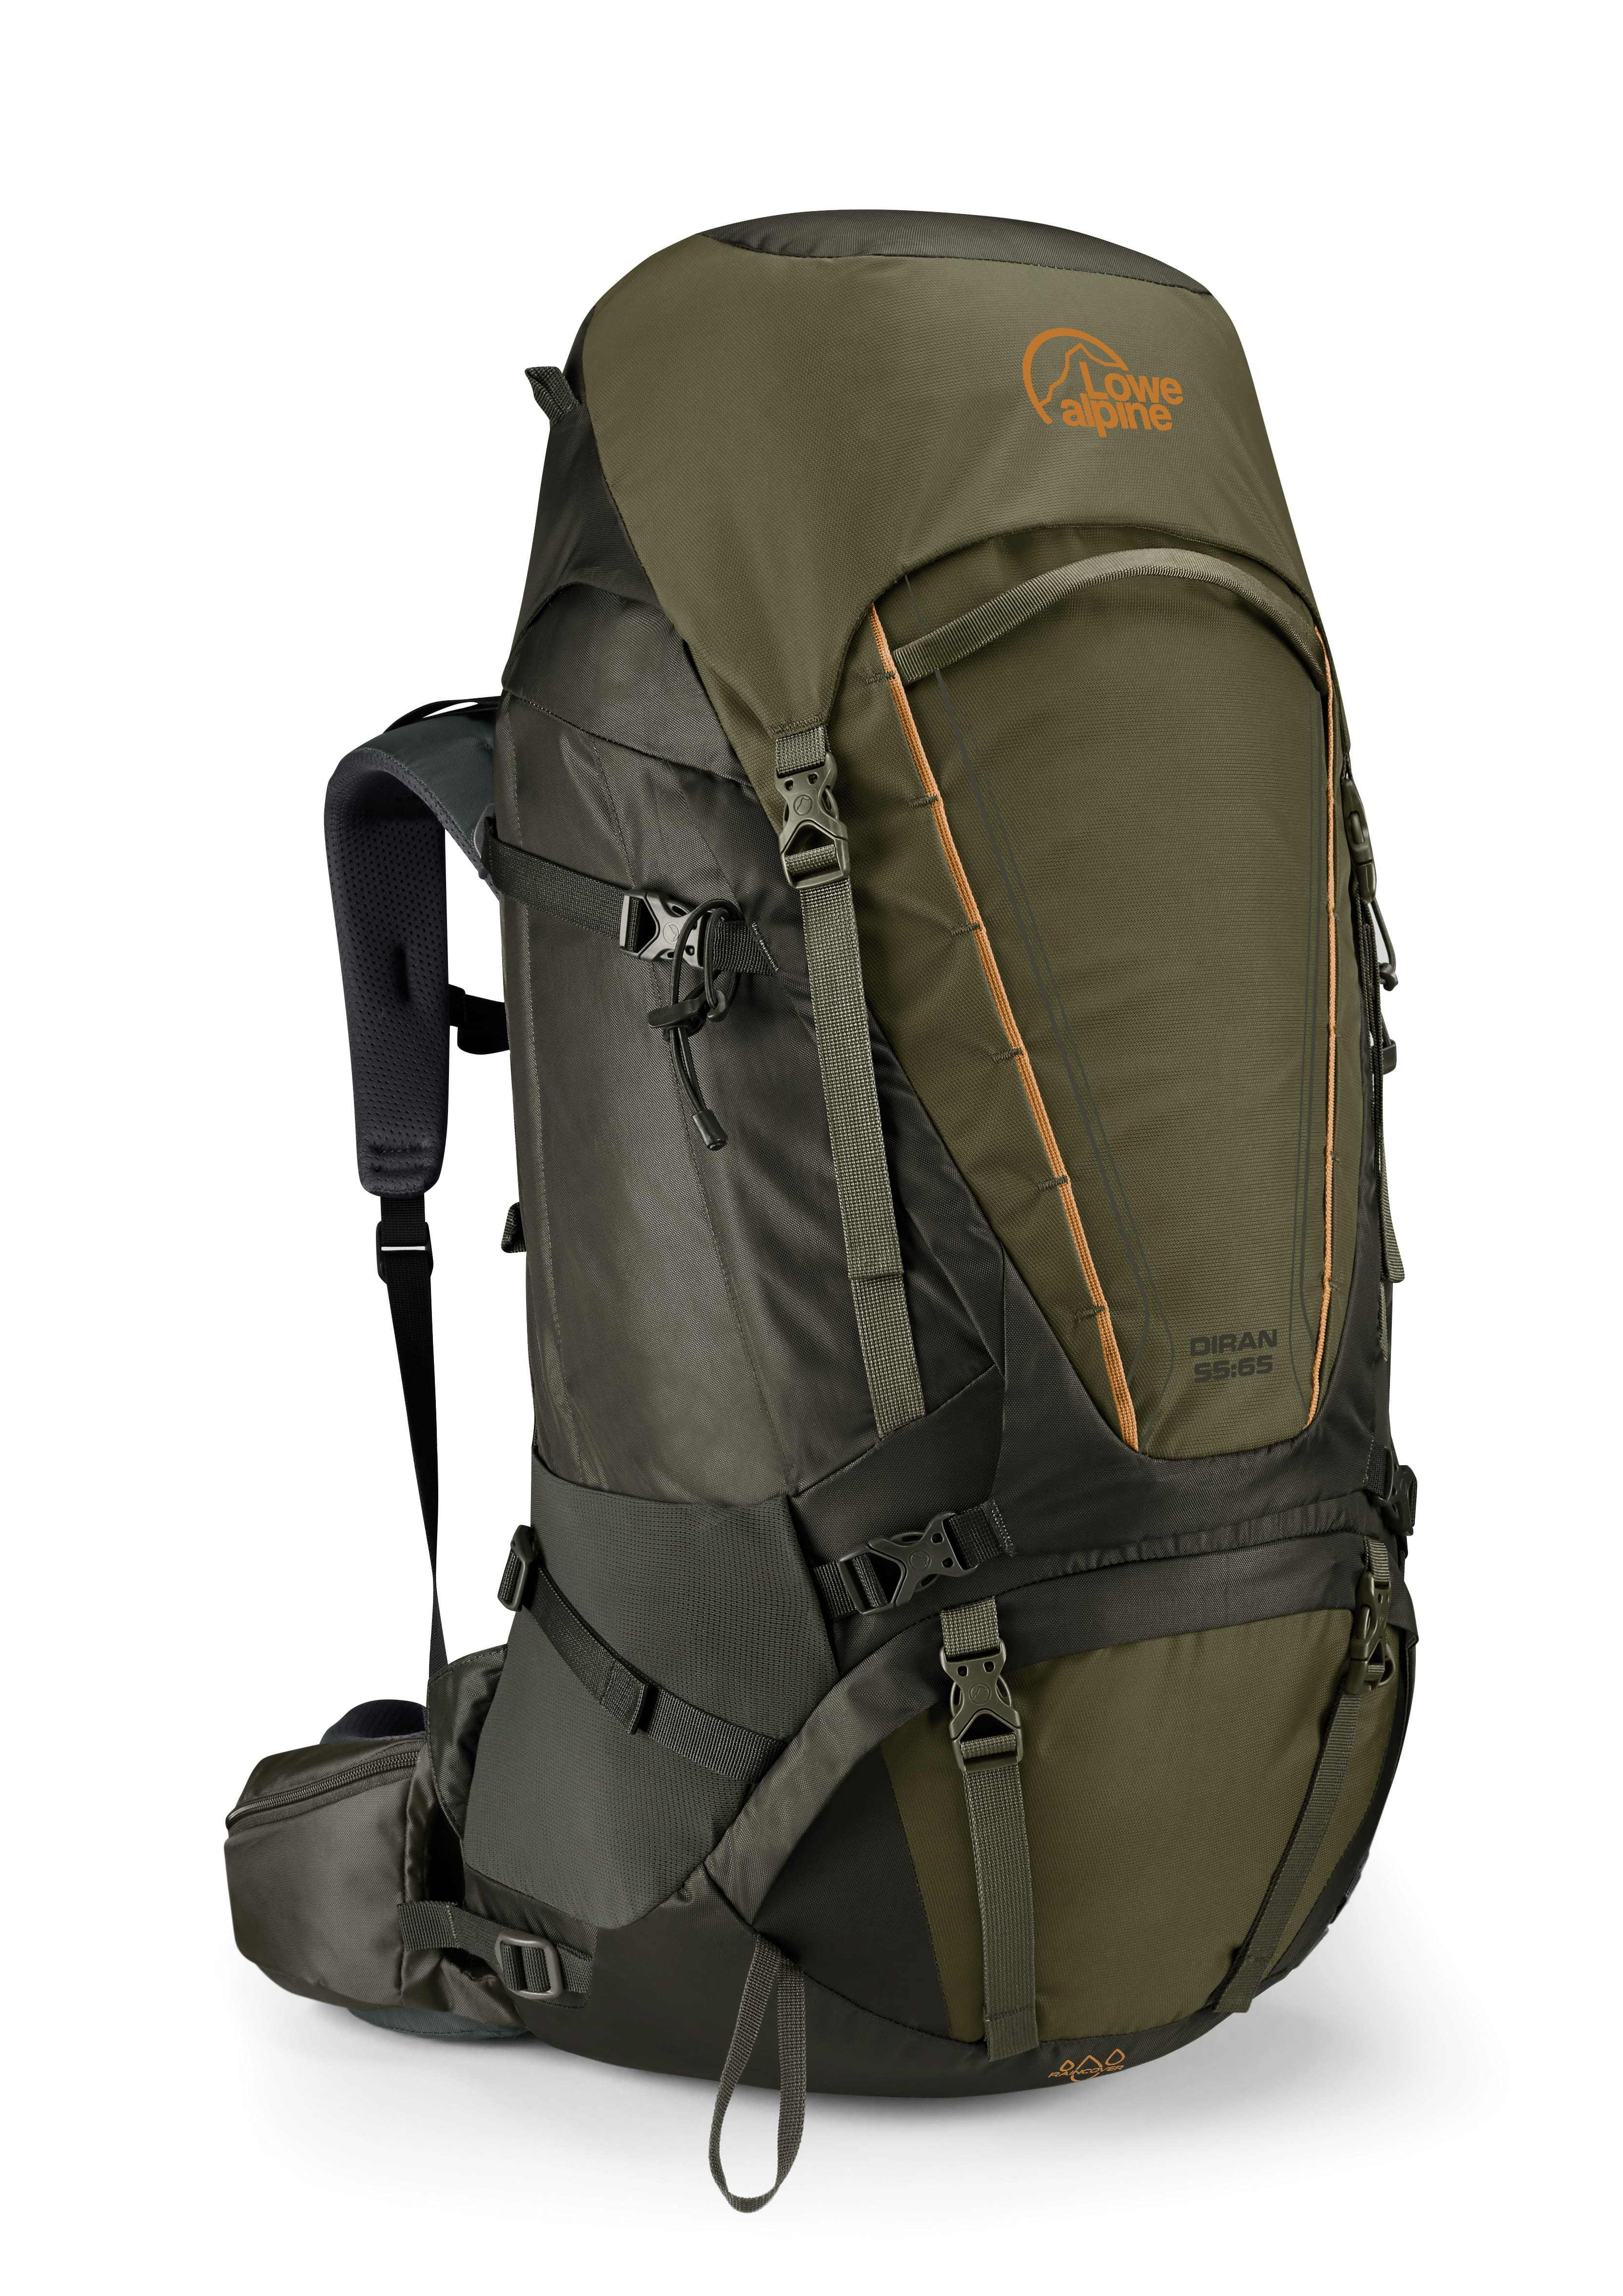 076c44beabf66 Lowe Alpine Diran 55 65 Backpack with Free S H — CampSaver